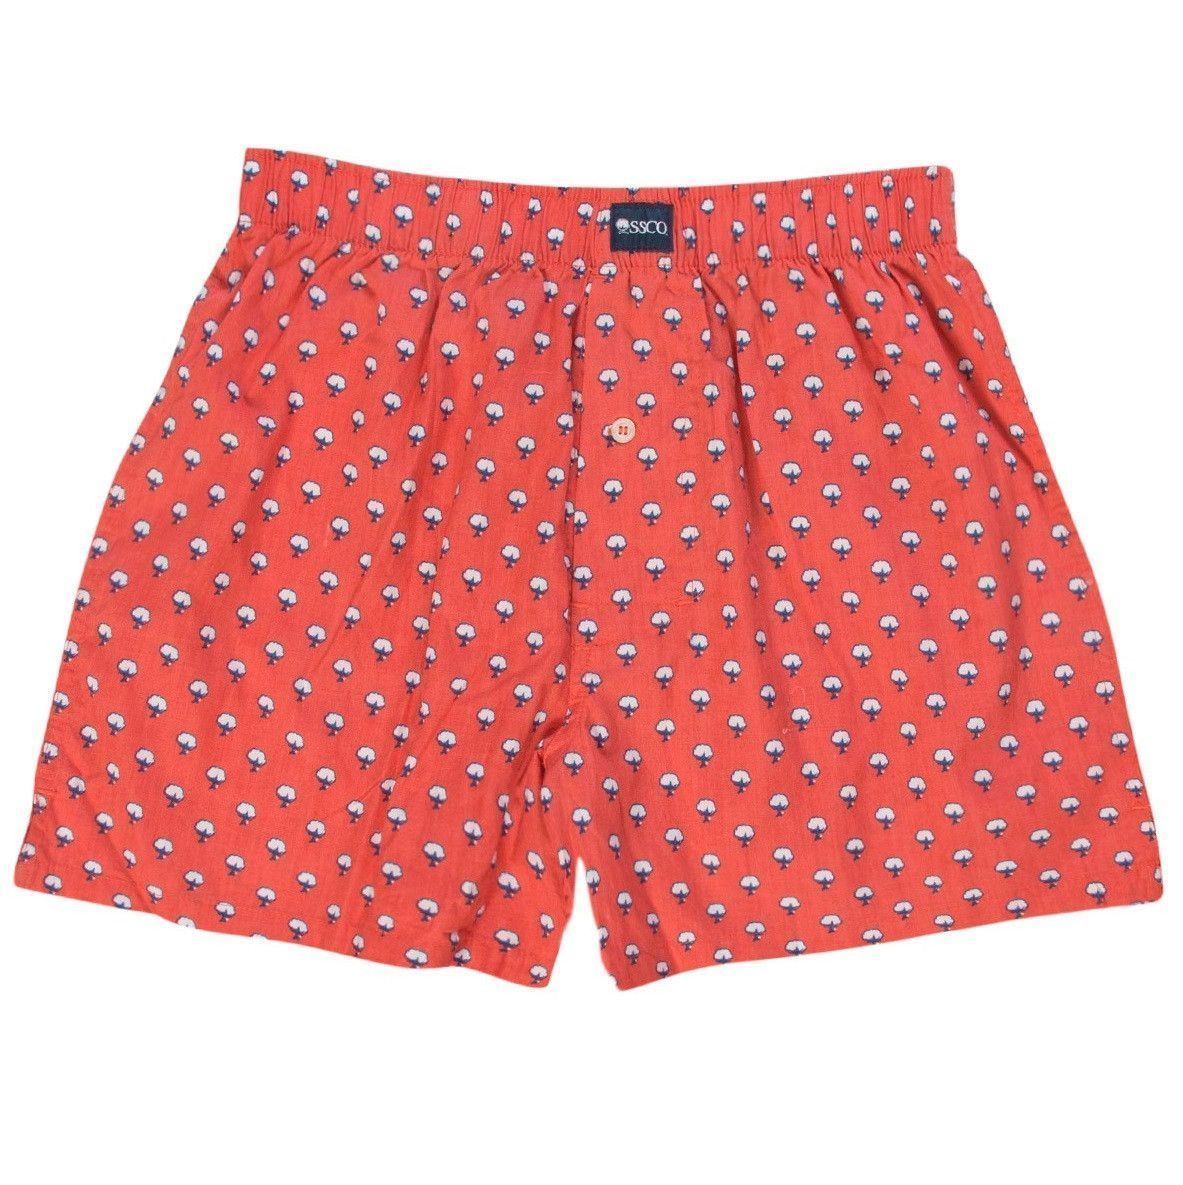 ccb5e70be4 Cotton Club Boxers in Deep Sea Coral by The Southern Shirt Co ...